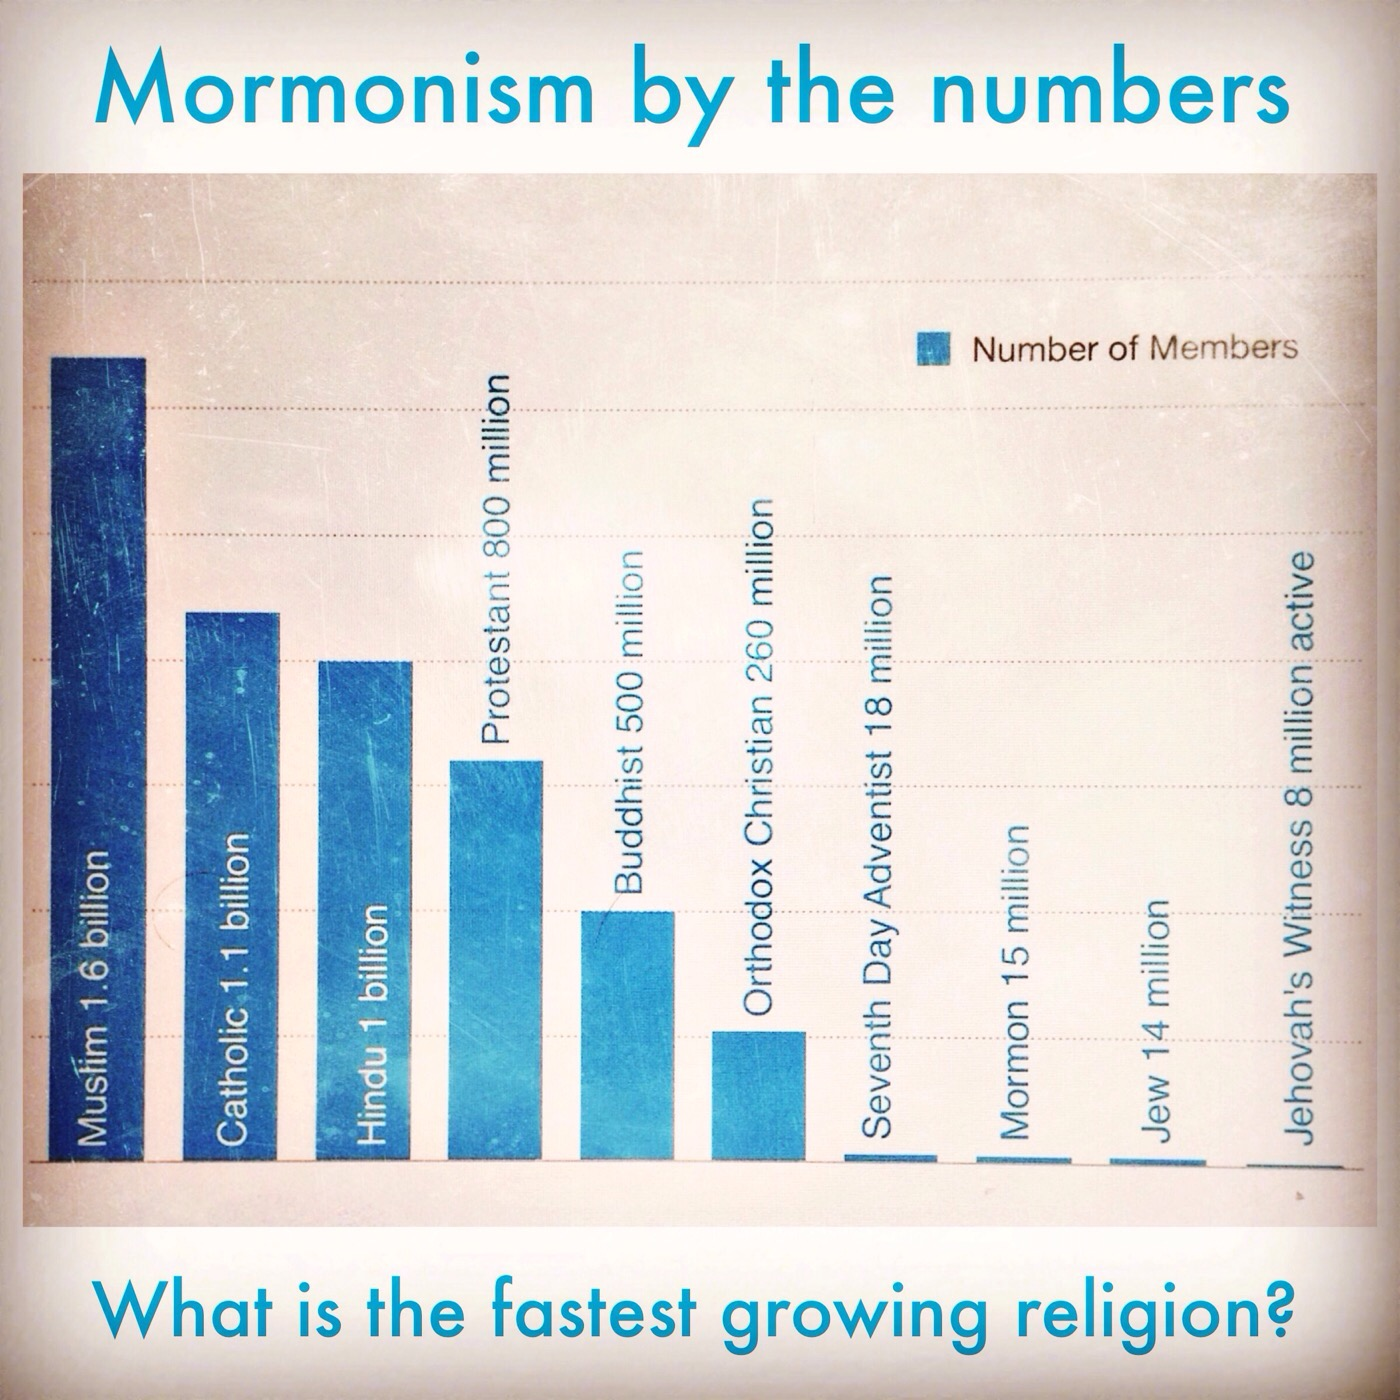 Fastest growing religion?